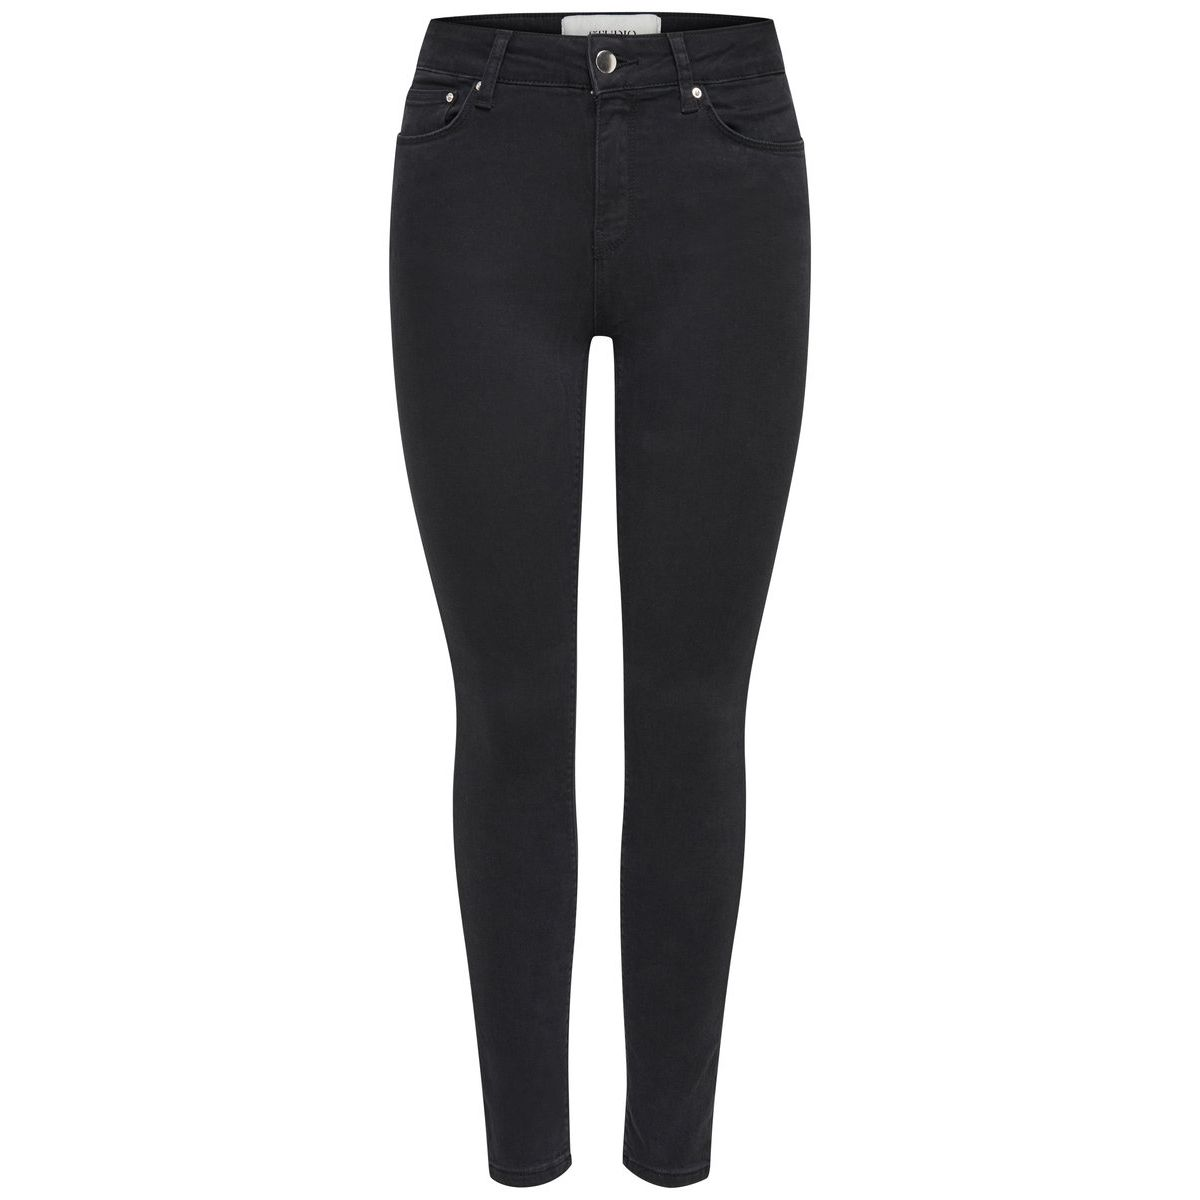 Only Studio mw silver Skinny Fit Jeans